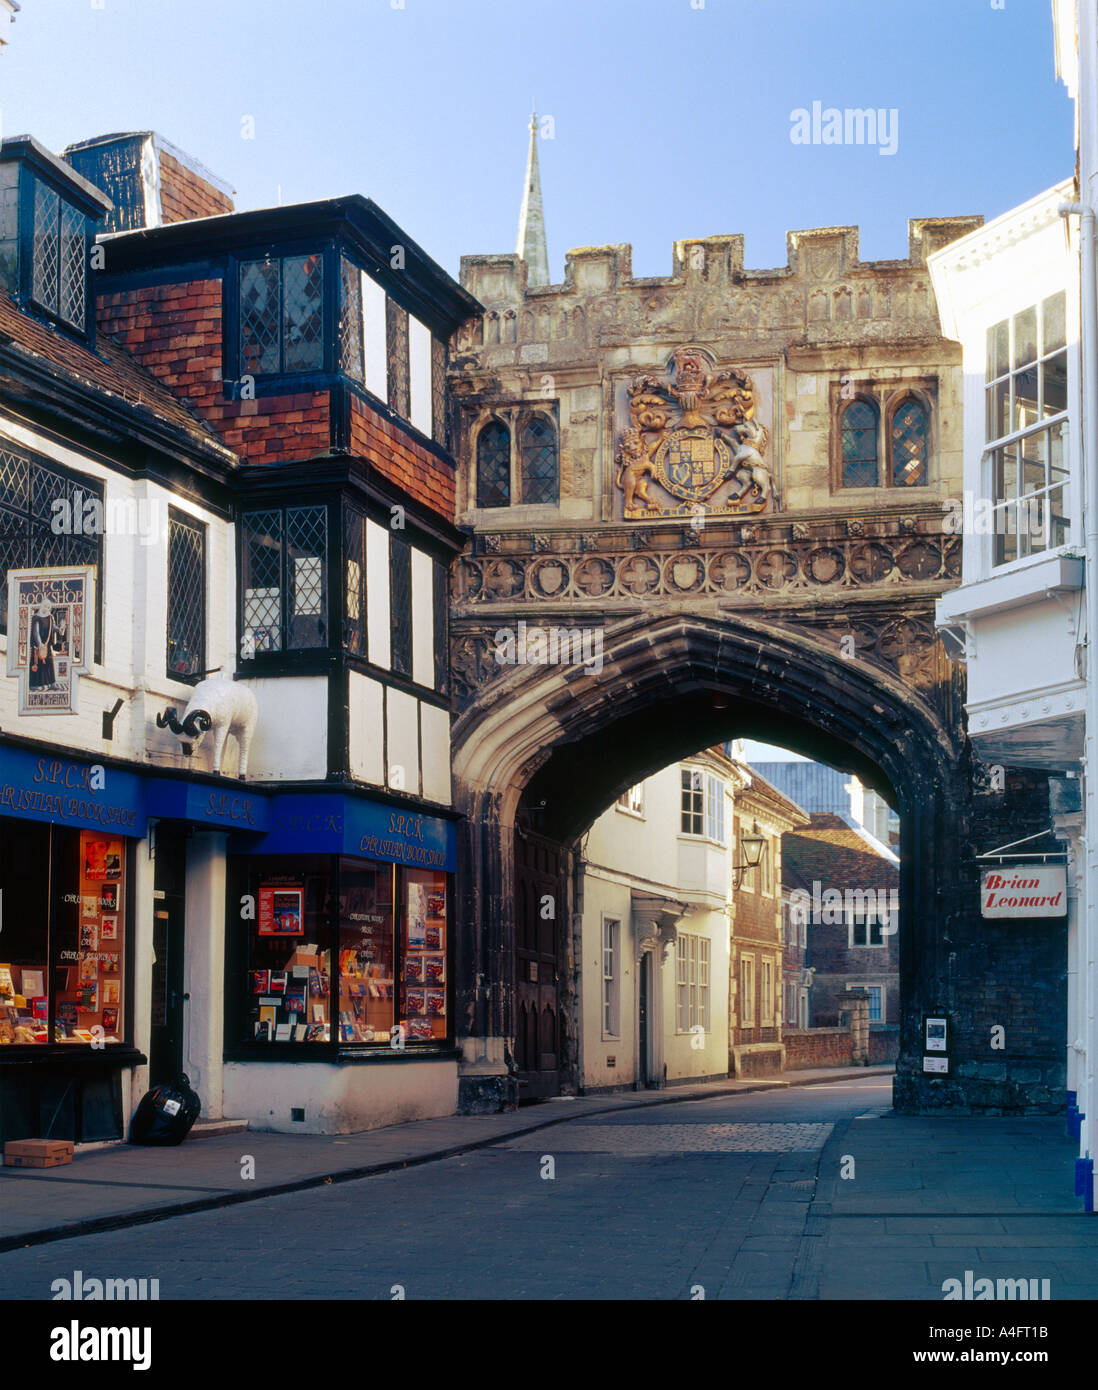 The North Gate to the Cathedral Close also known as the High Street Gate, Salisbury Wiltshire England - Stock Image